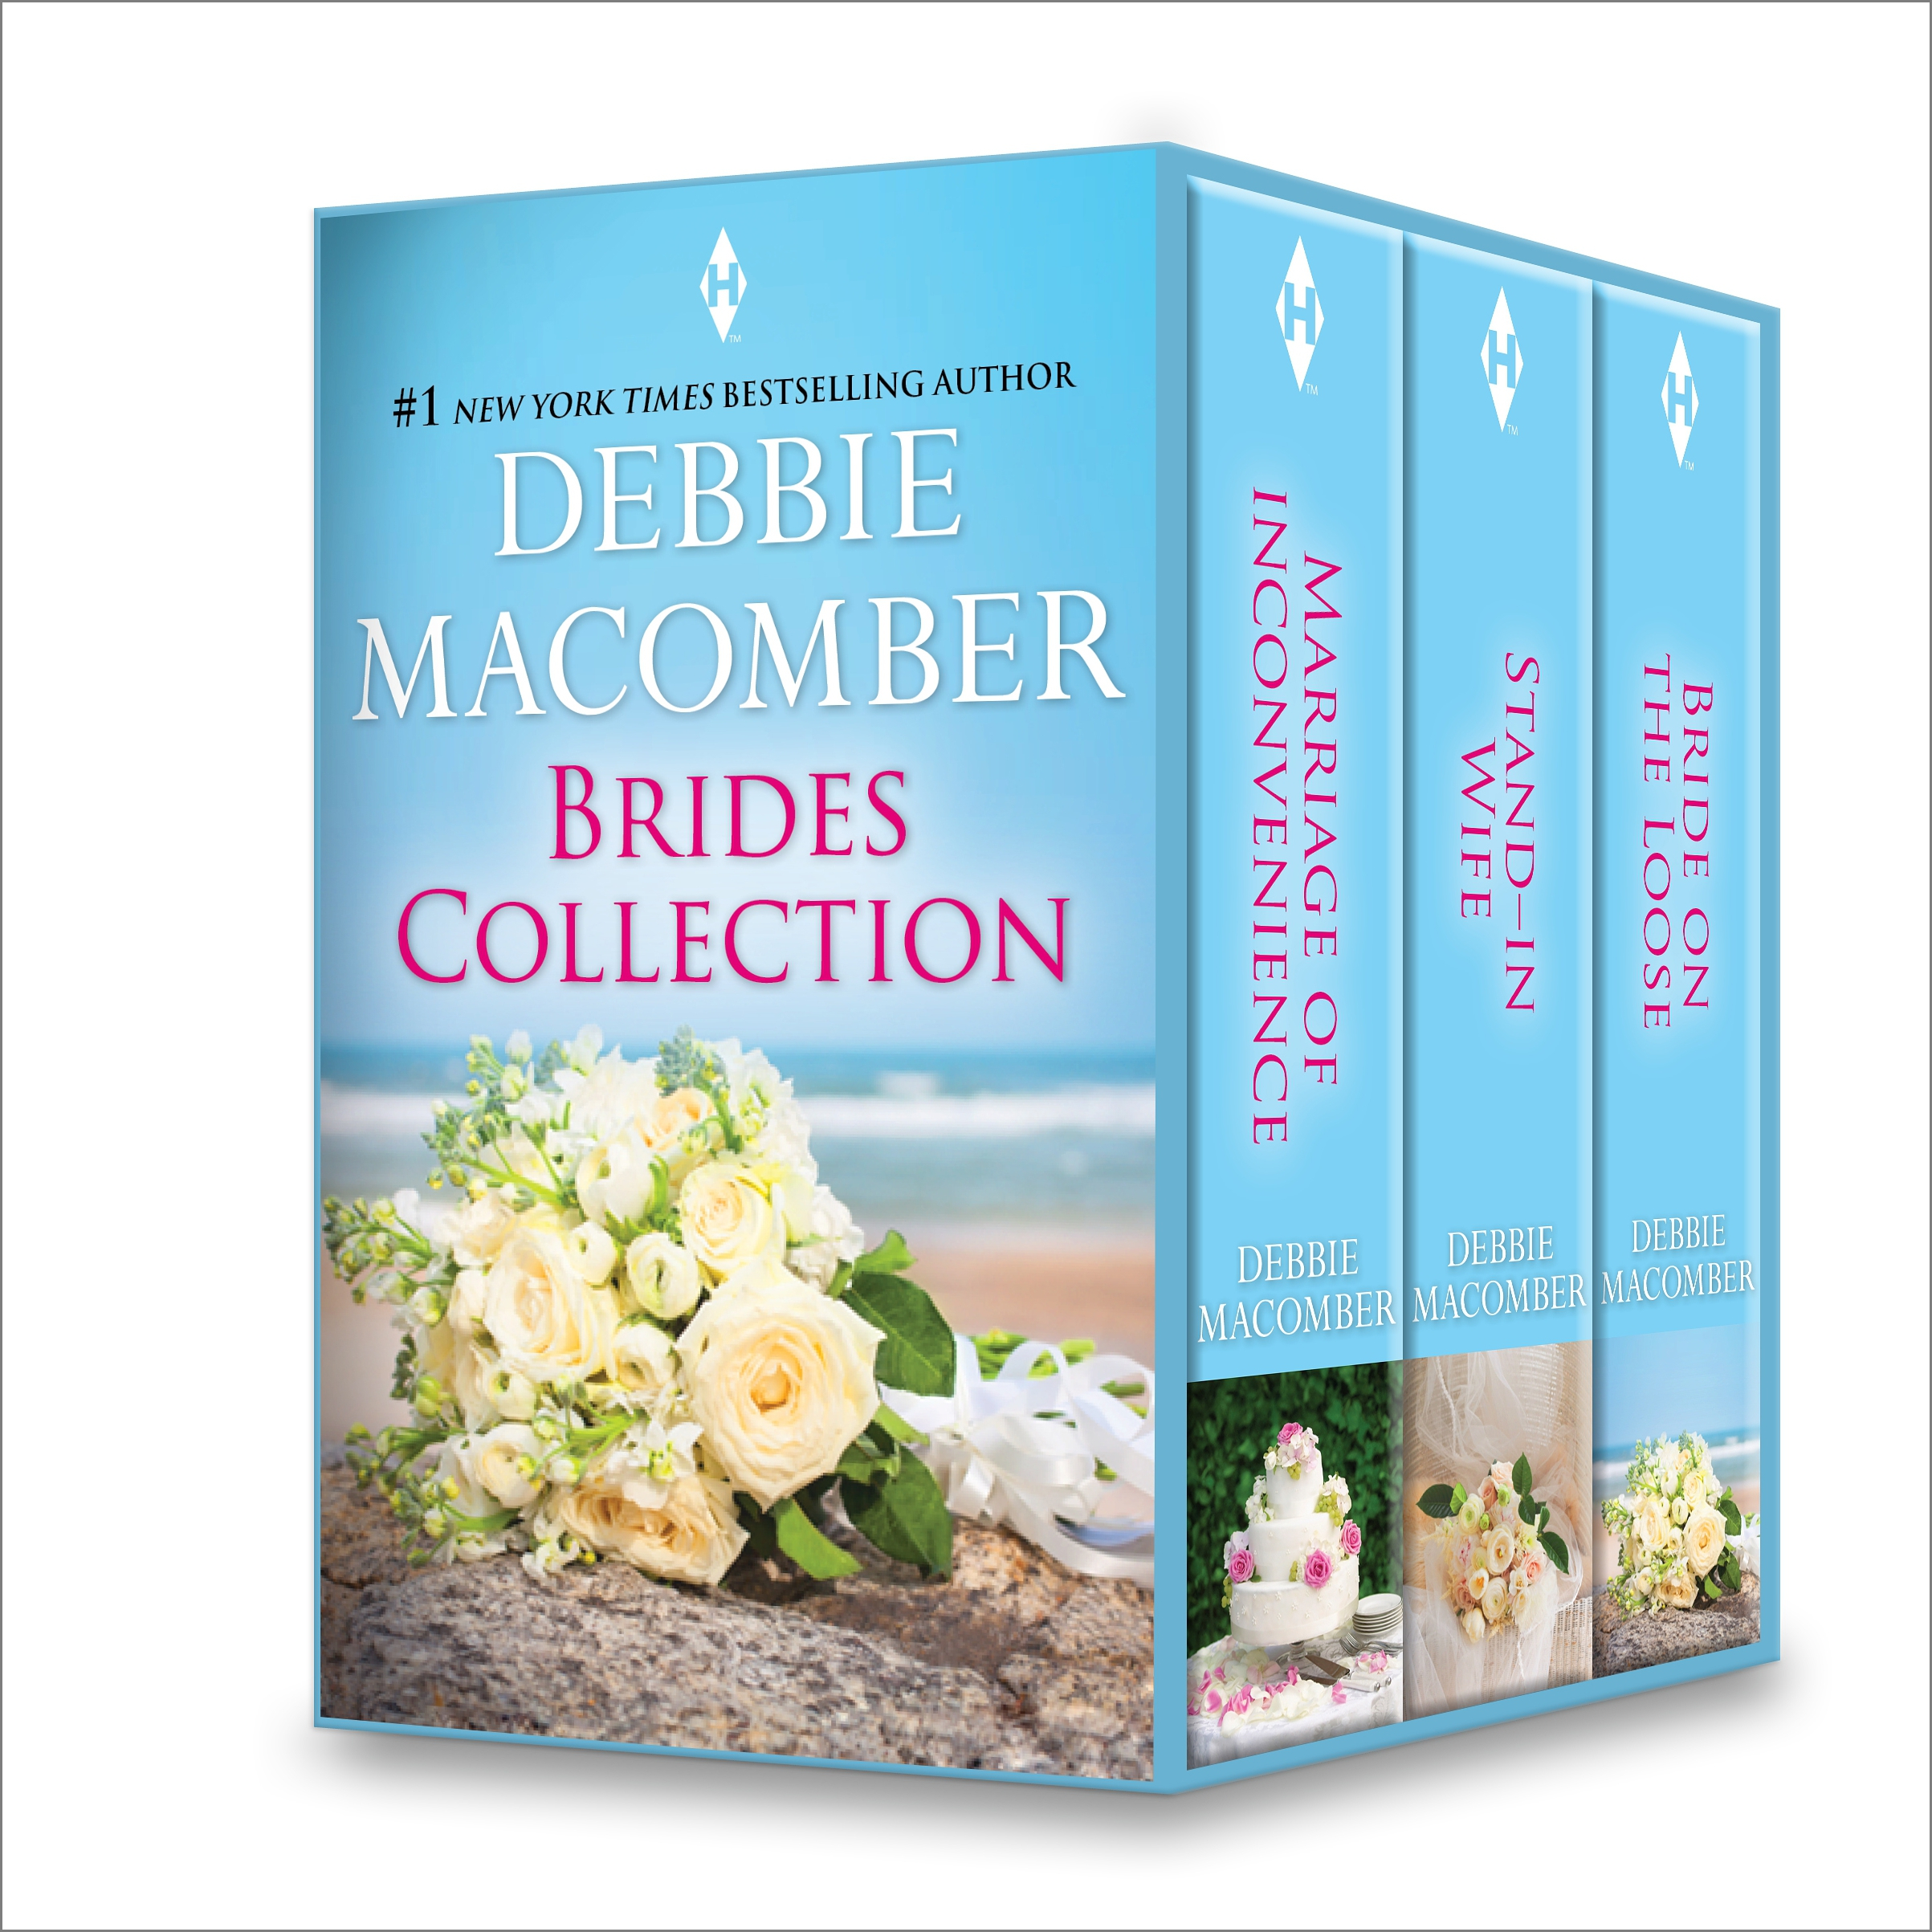 Debbie Macomber Brides Collection Marriage of Inconvenience\Stand-In Wife\Bride on the Loose